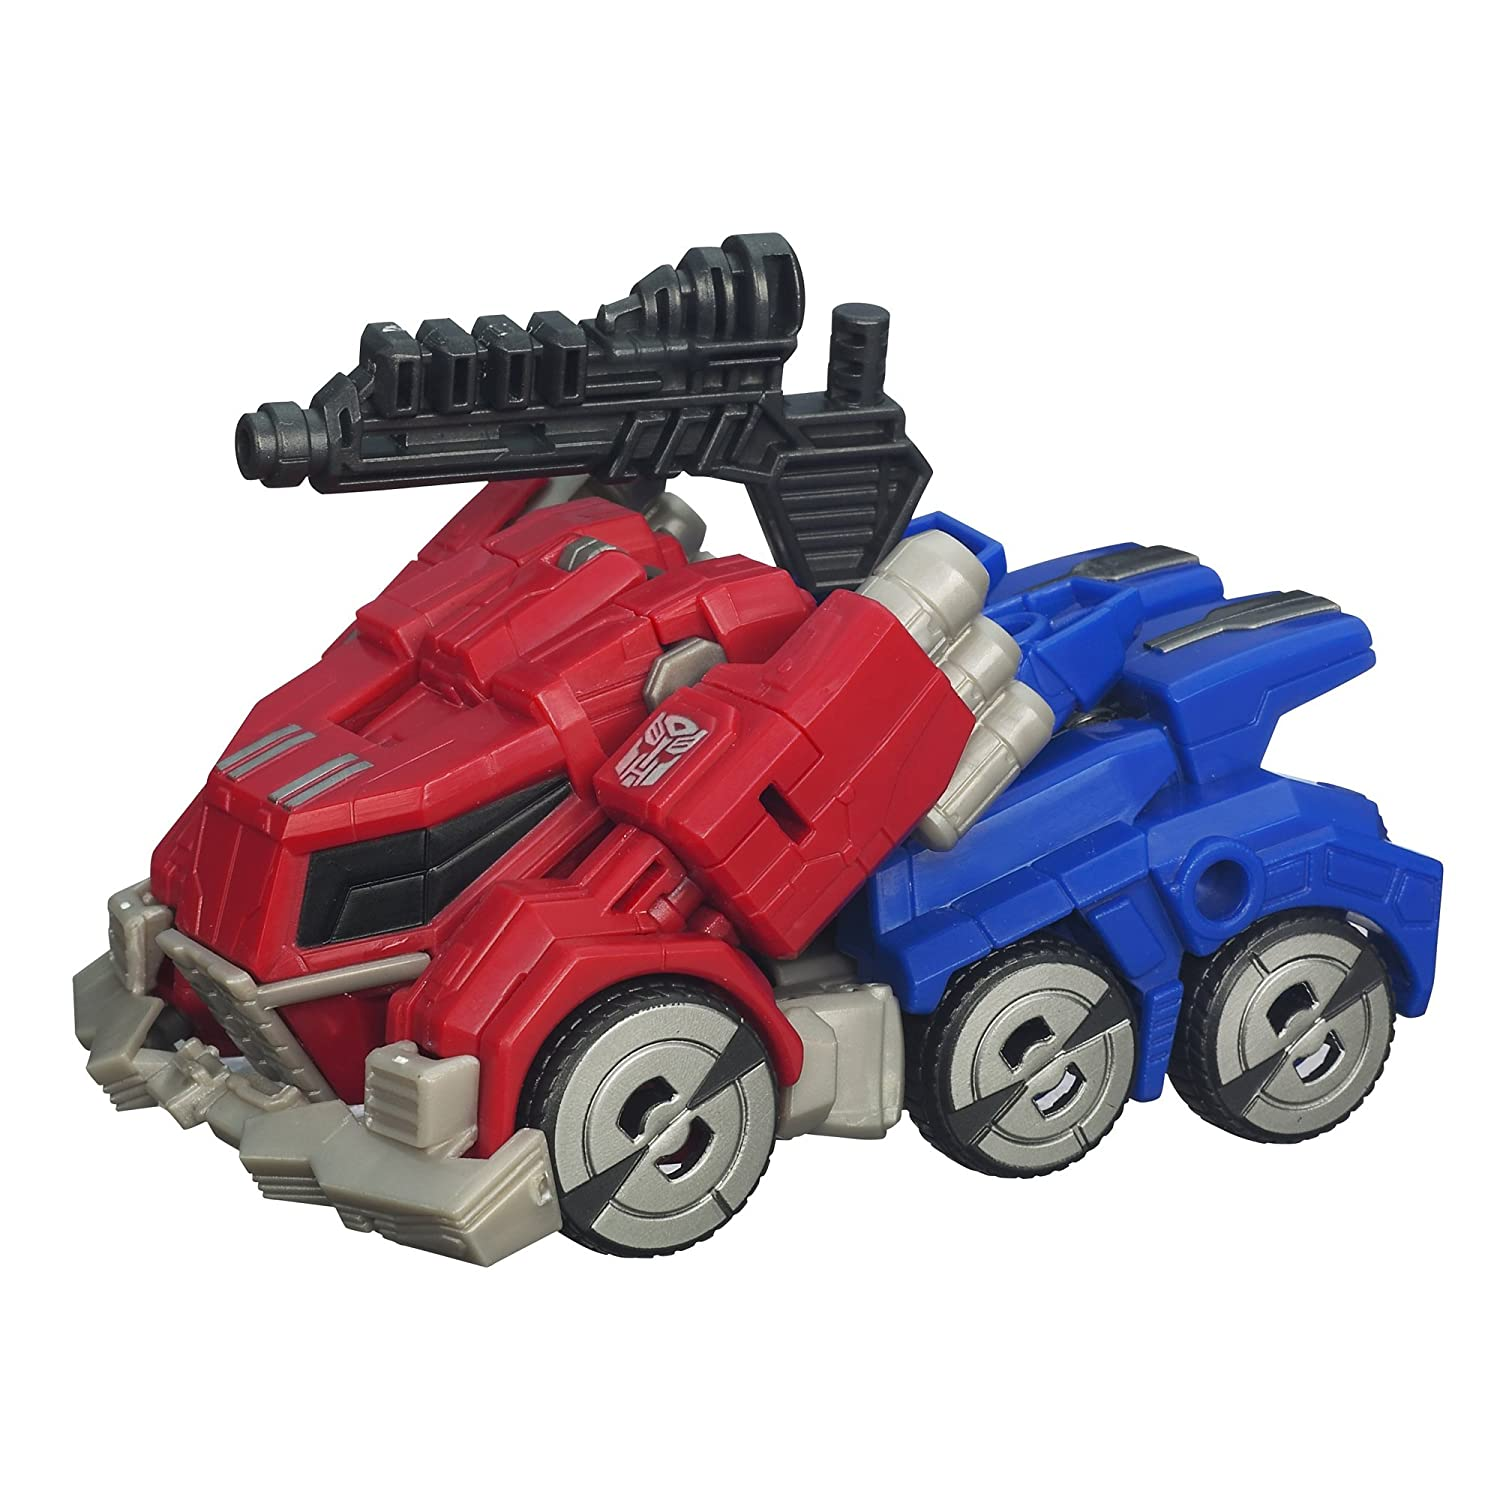 Image result for TRANSFORMERS AND TOYS AND OPTIMUS PRIME